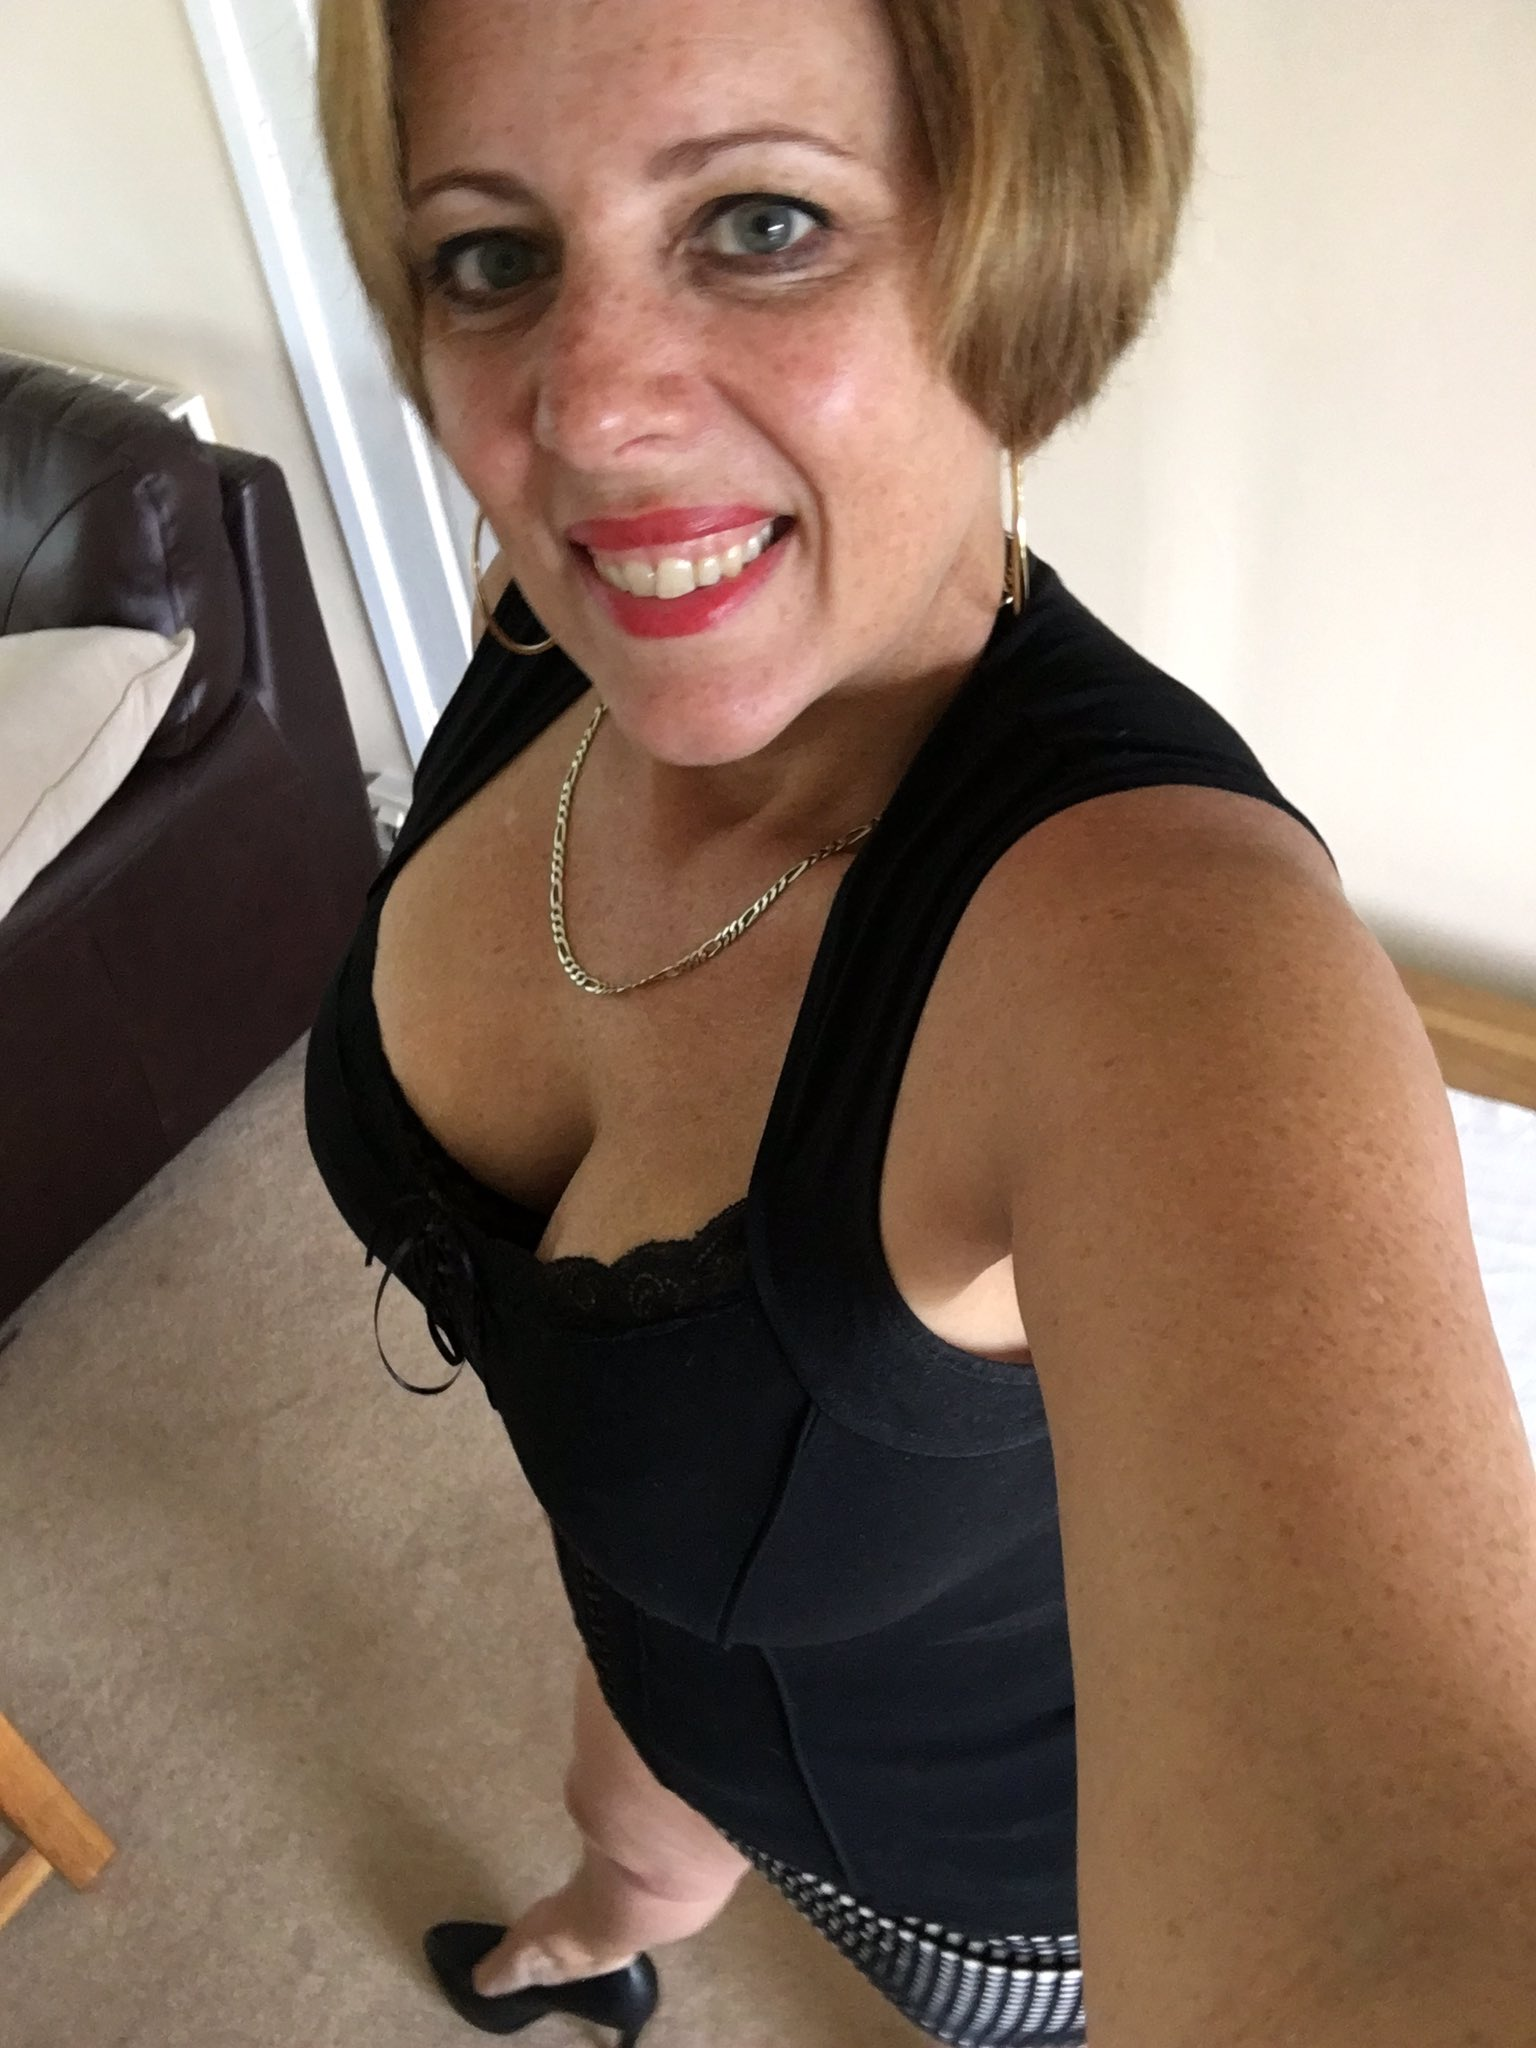 Curvy Claire on Twitter: Ready for the day ahead whatever